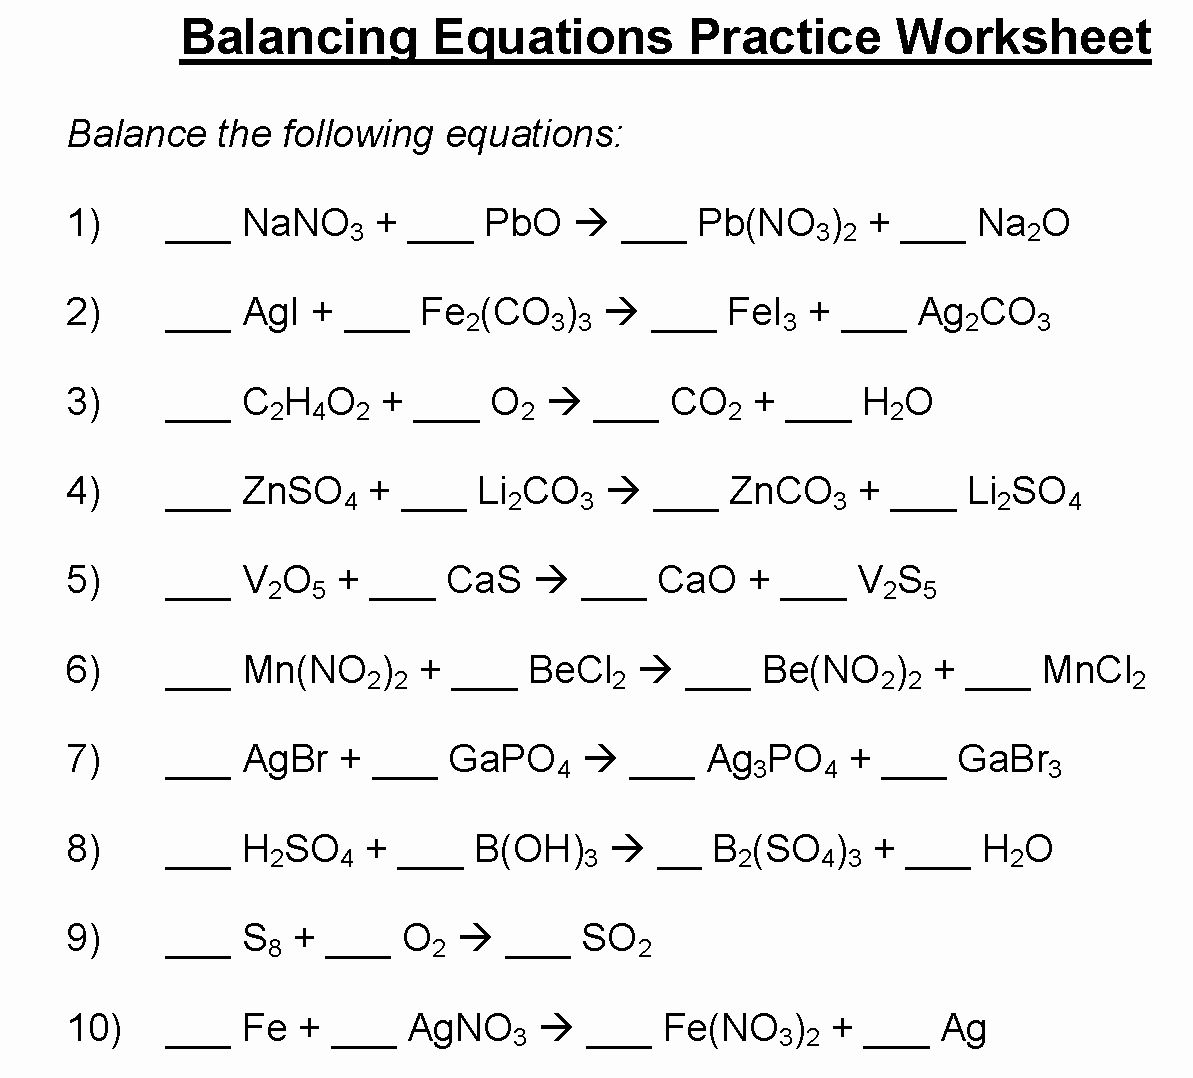 49 Balancing Equations Practice Worksheet Answers in 2020